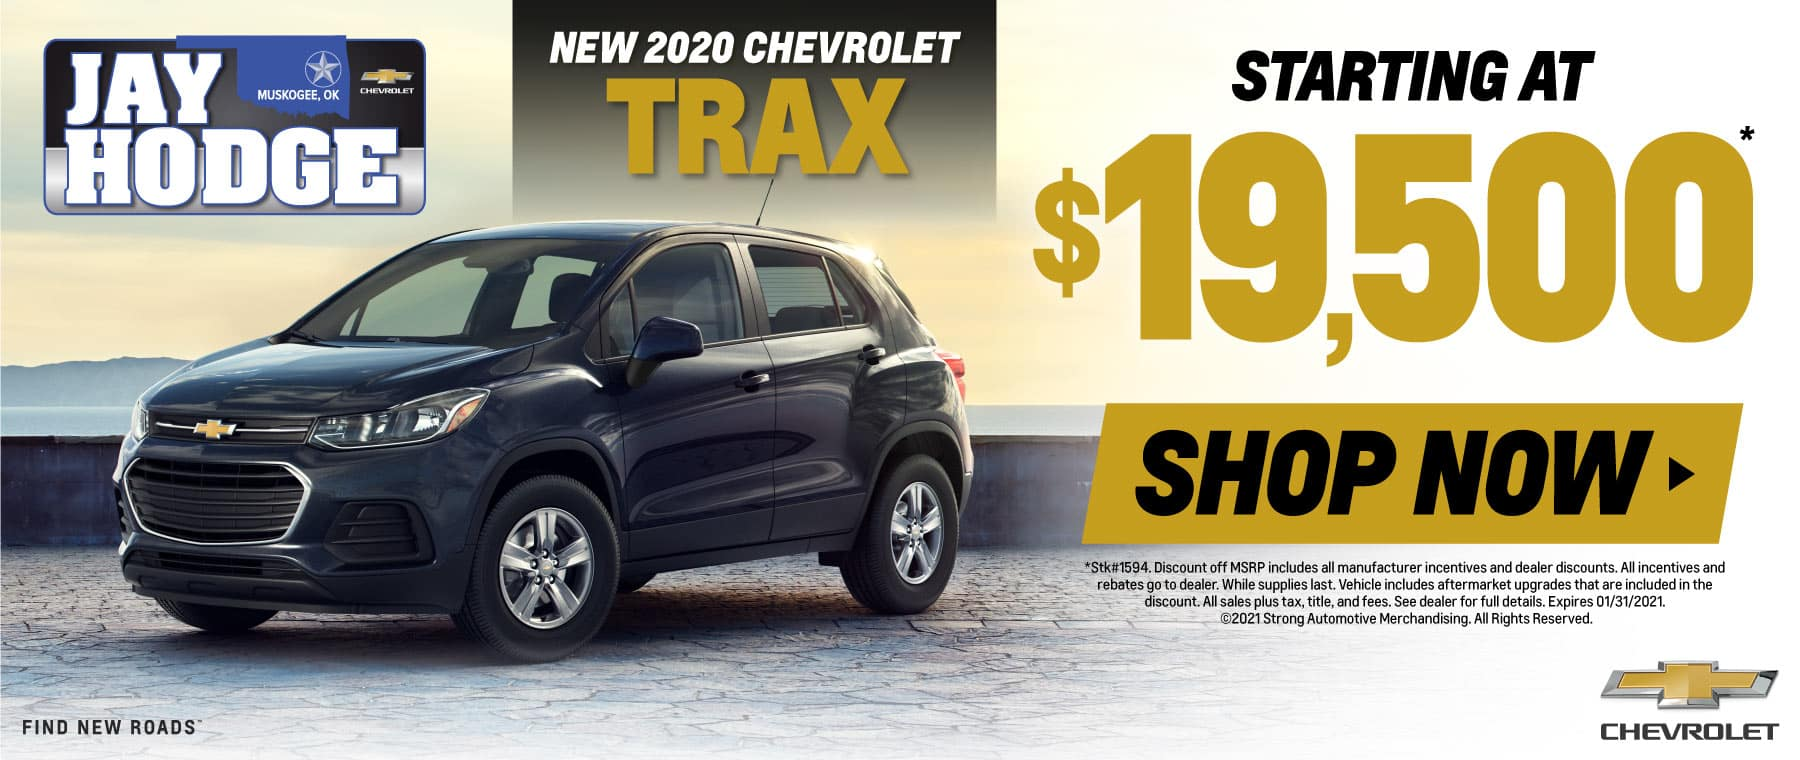 New 2020 Chevrolet Trax - Starting at $19,500 - Shop Now